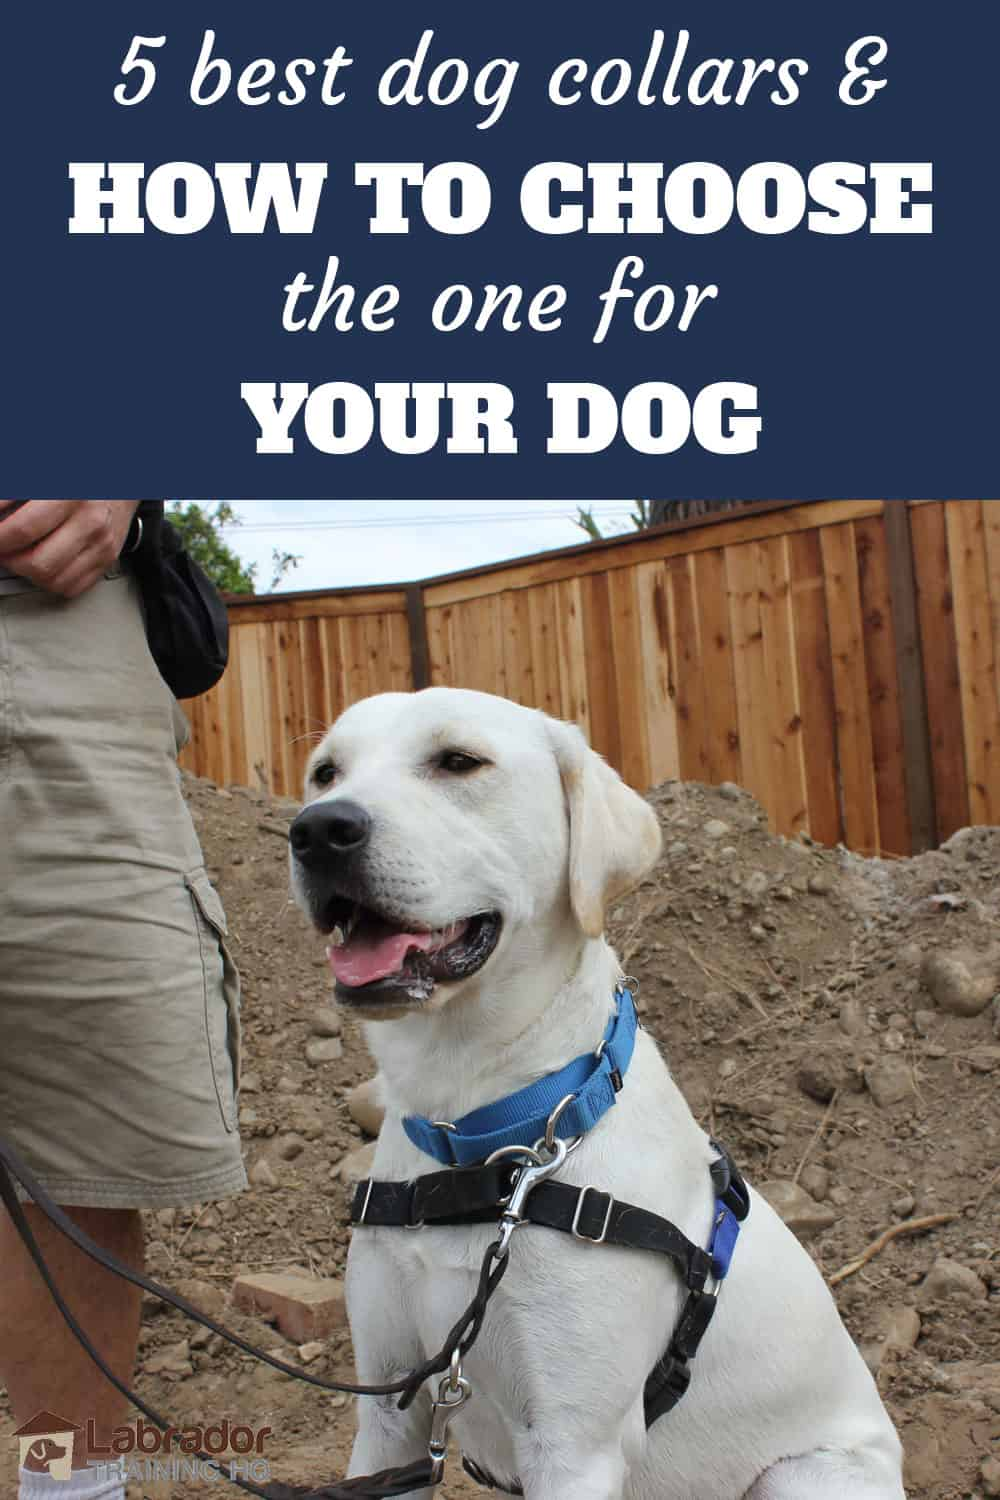 5 best dog collars and how to choose one for your dog. White Labrador Retriever sitting with his mouth open wearing martingale collar and harness